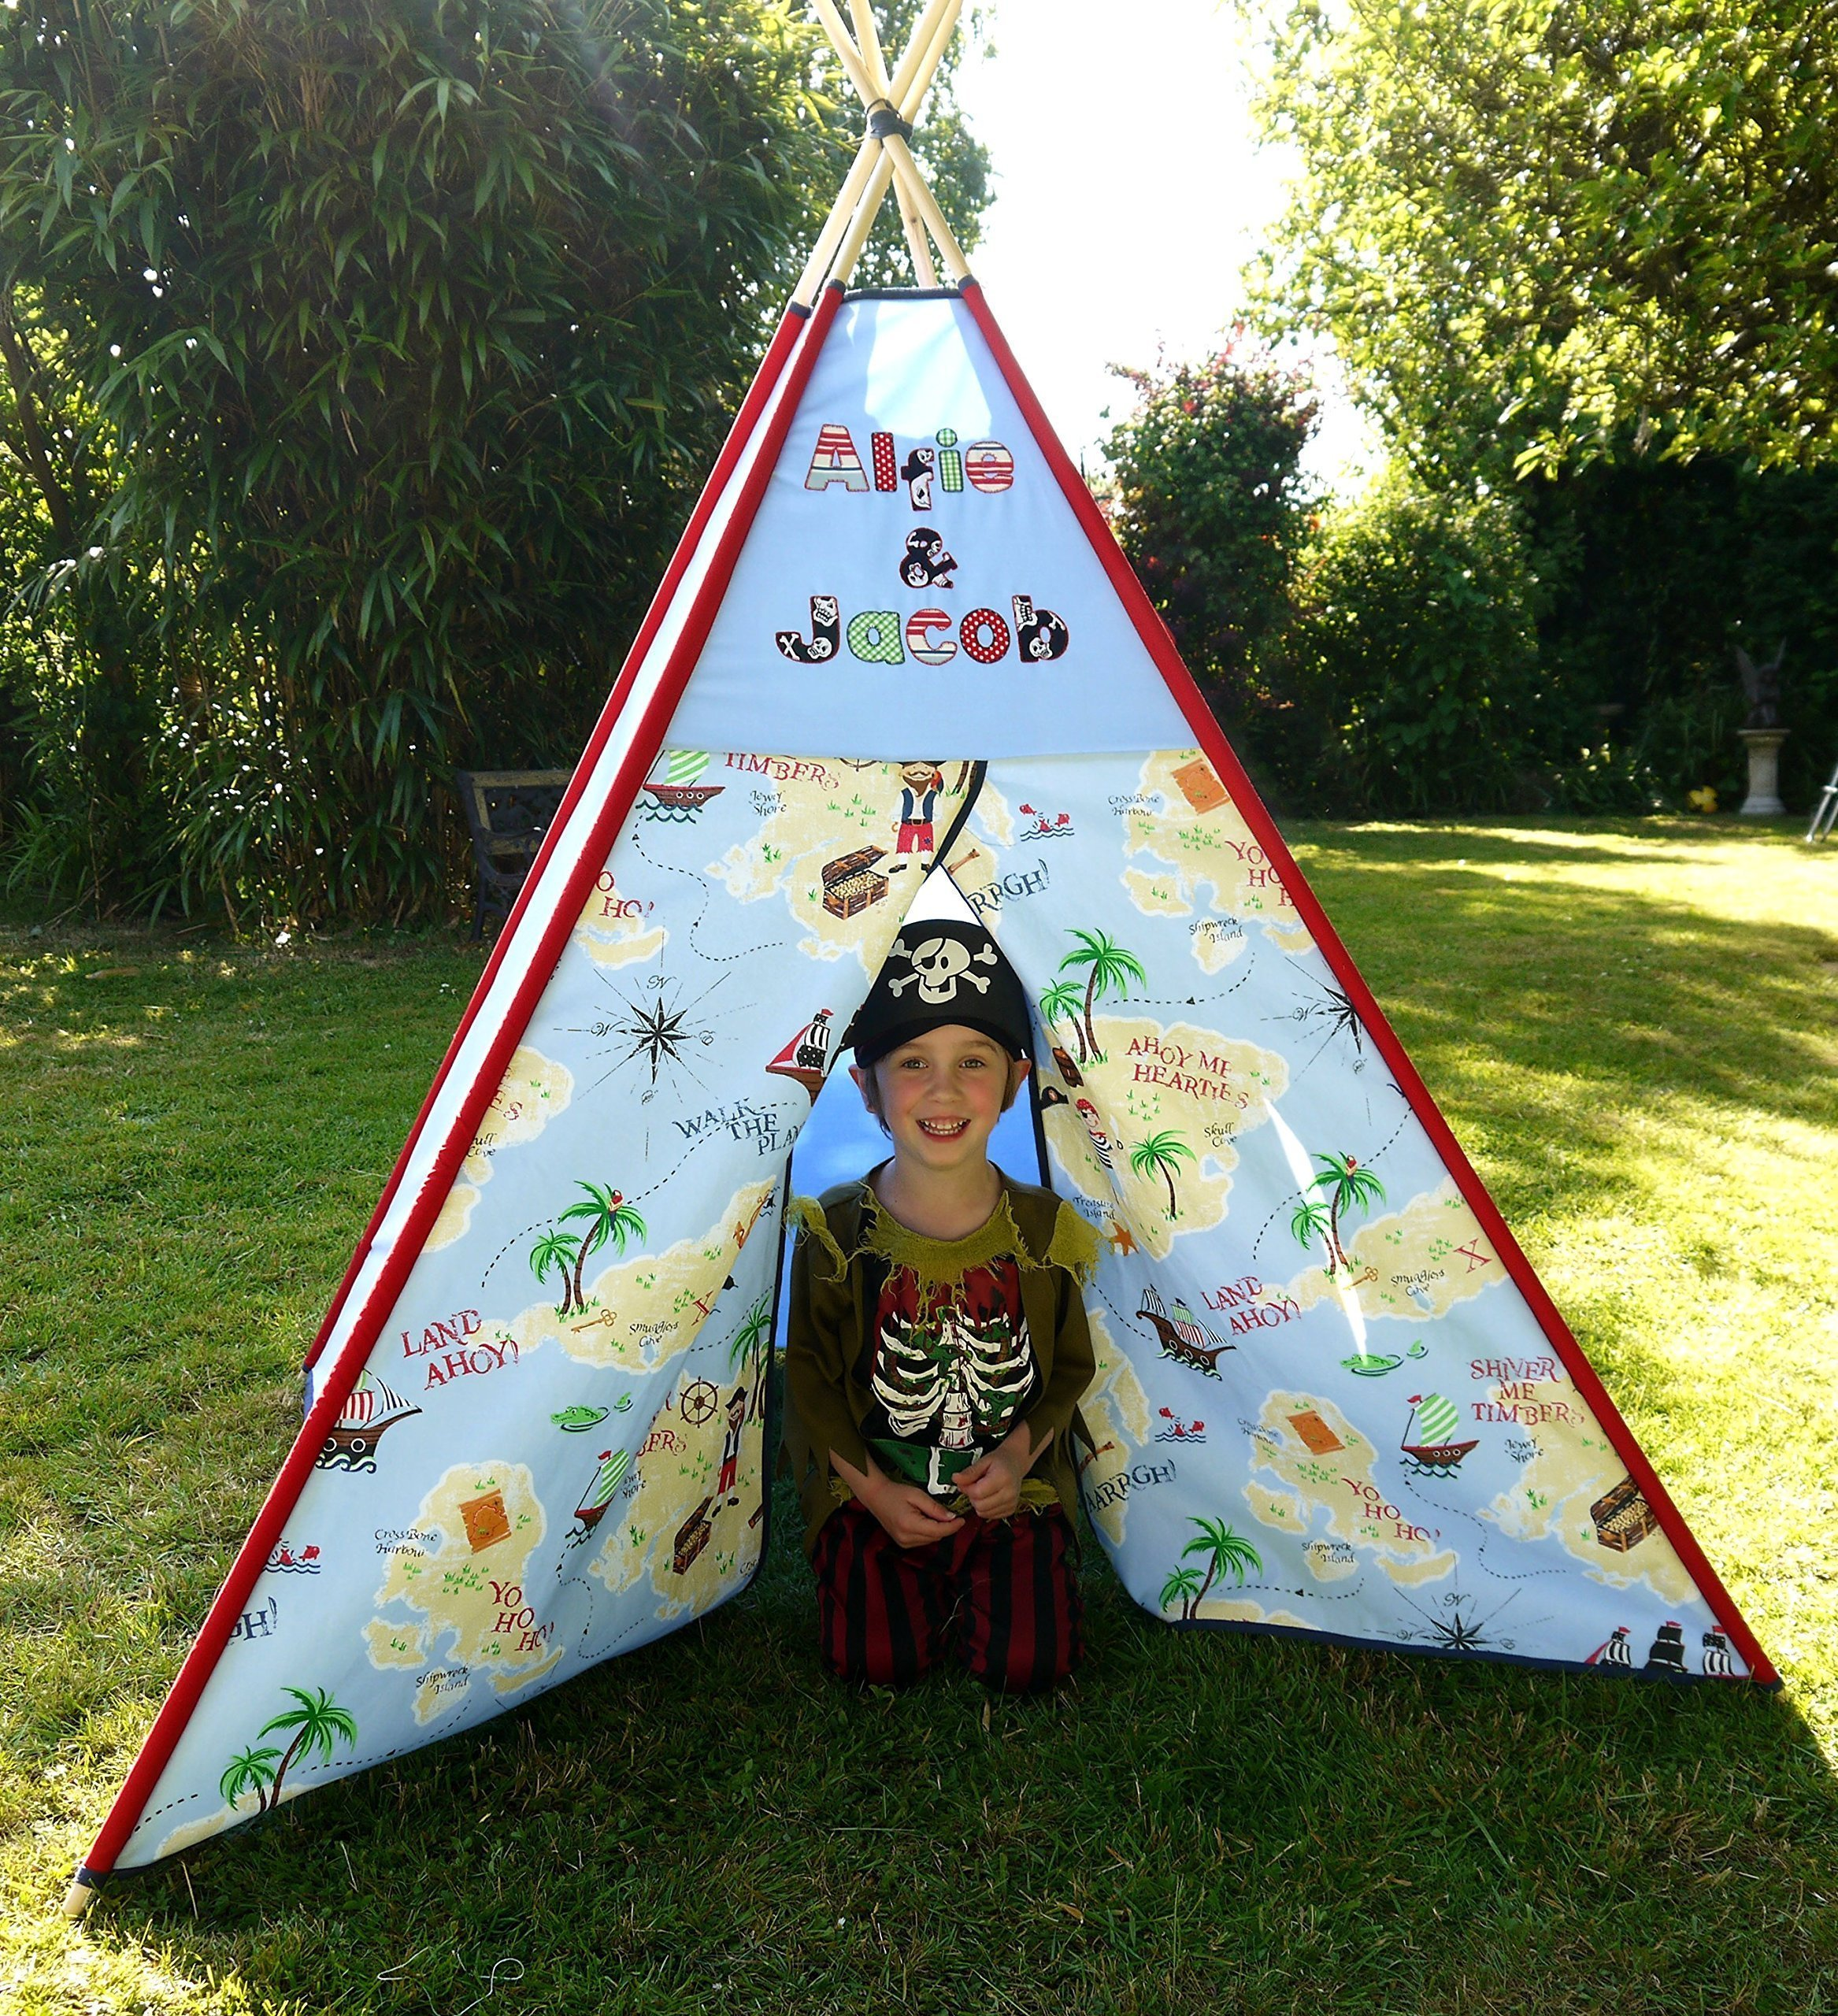 Pirate Teepee Boys girls named Personalized tipi play tent play house Bespoke